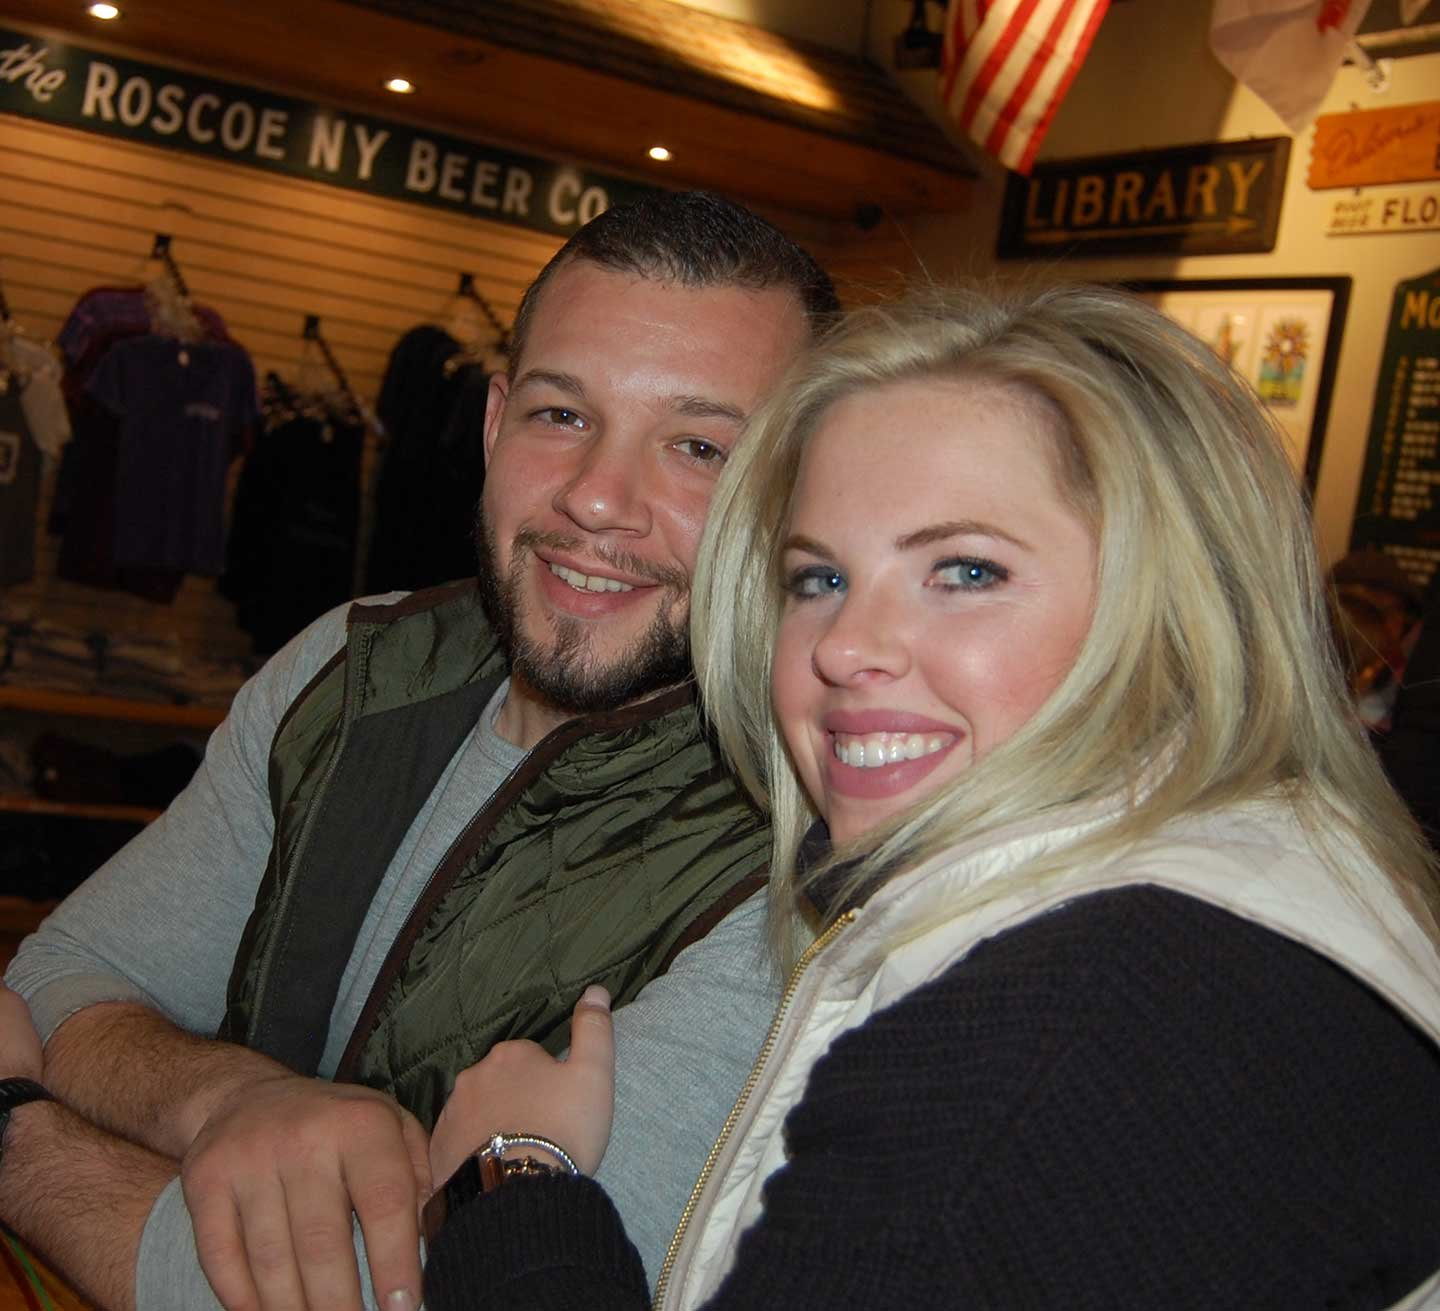 """We will absolutely be back!"" exclaimed Neversink resident Shannon, of her first time at the Roscoe Beer Company and WinterFest. ""It's a hidden gem in the Catskills,"" she declared as boyfriend Nick nodded in agreement."